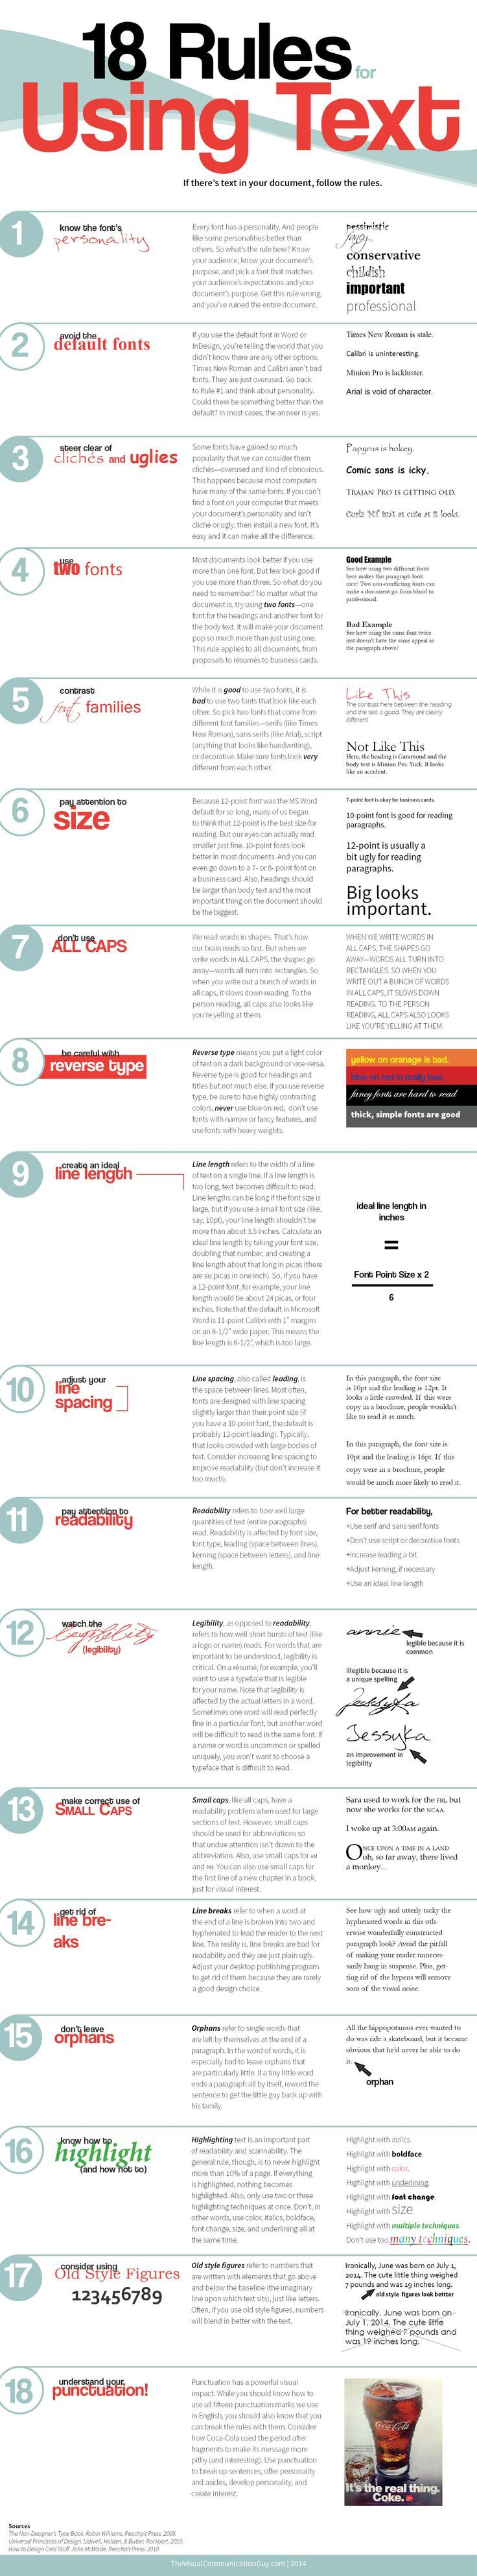 best images about fonts typography typography one of the most fundamental components to making a document visually appealing and readable is to make sure the text is designed well